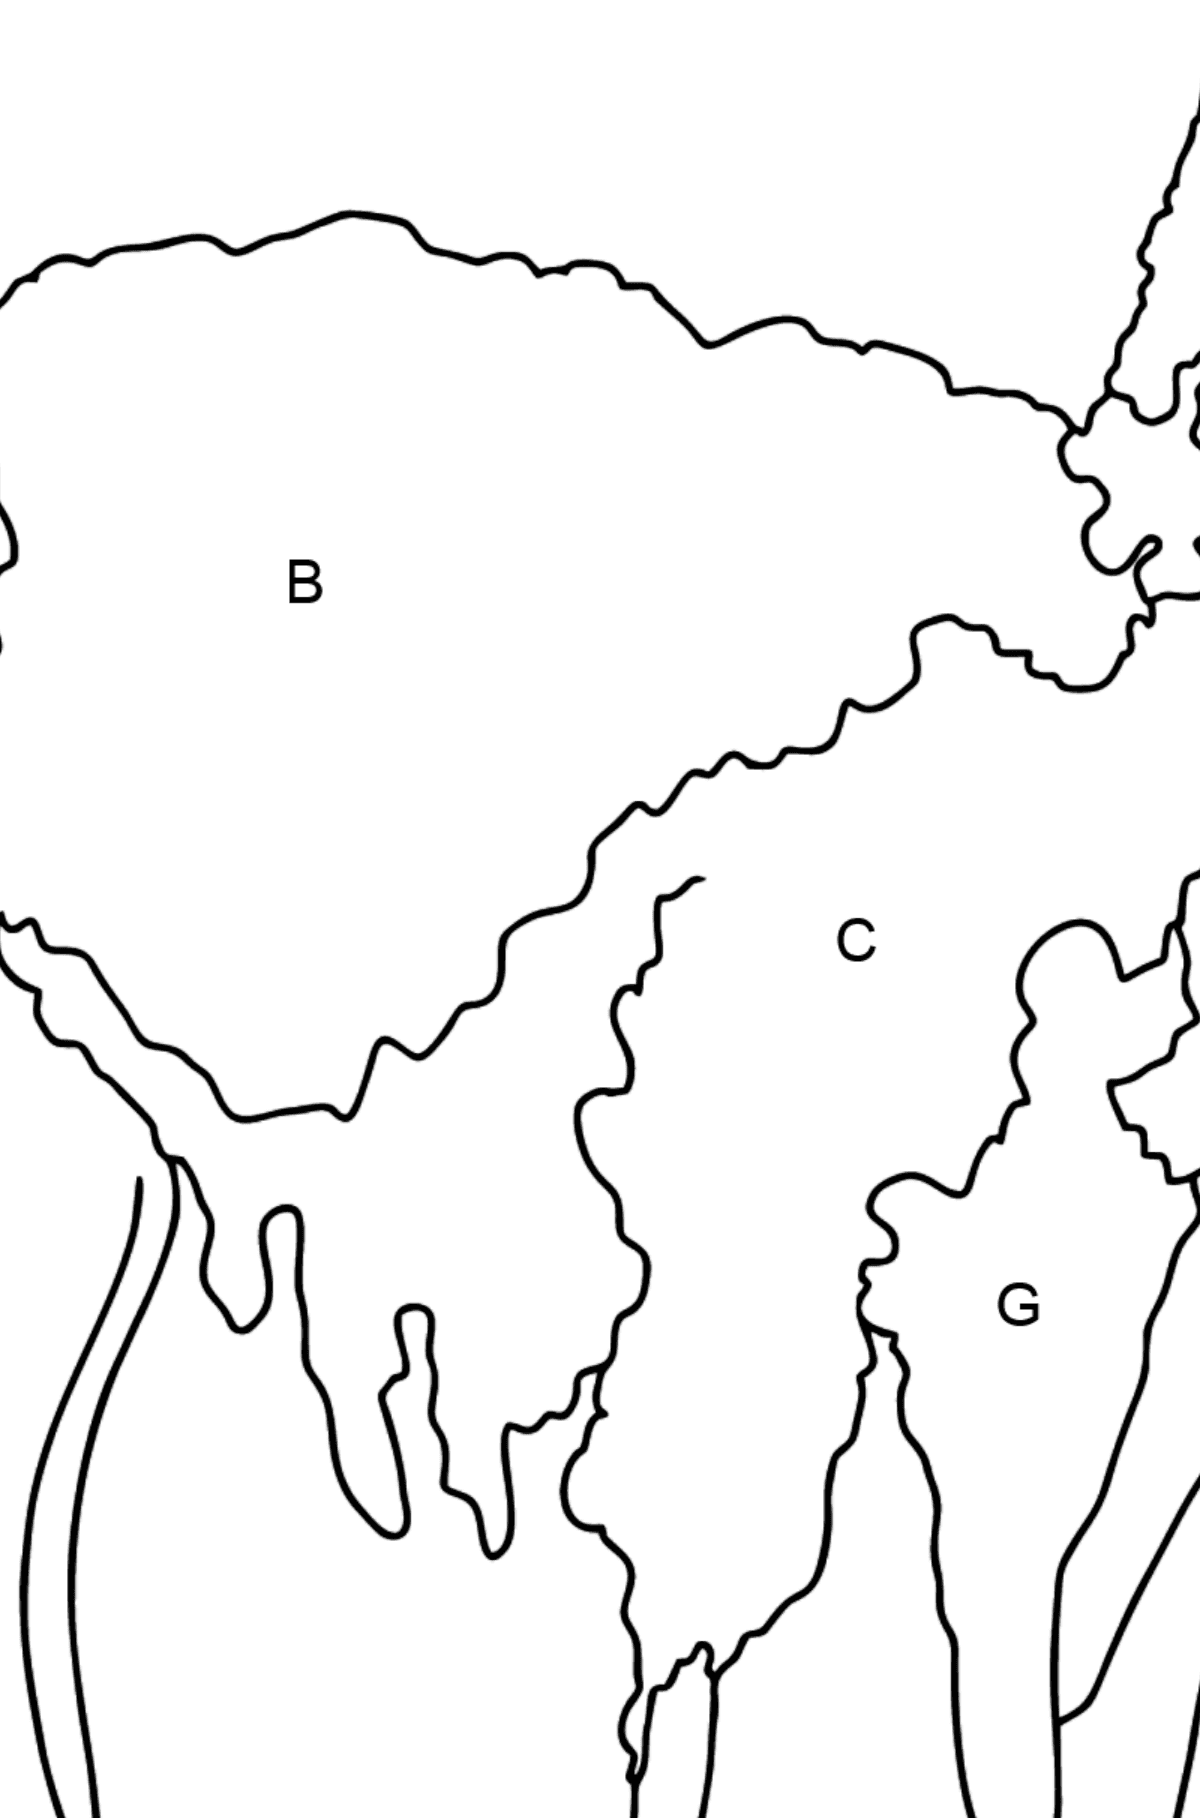 Coloring Page - A Lama is Inspecting the Area - Coloring by Letters for Kids